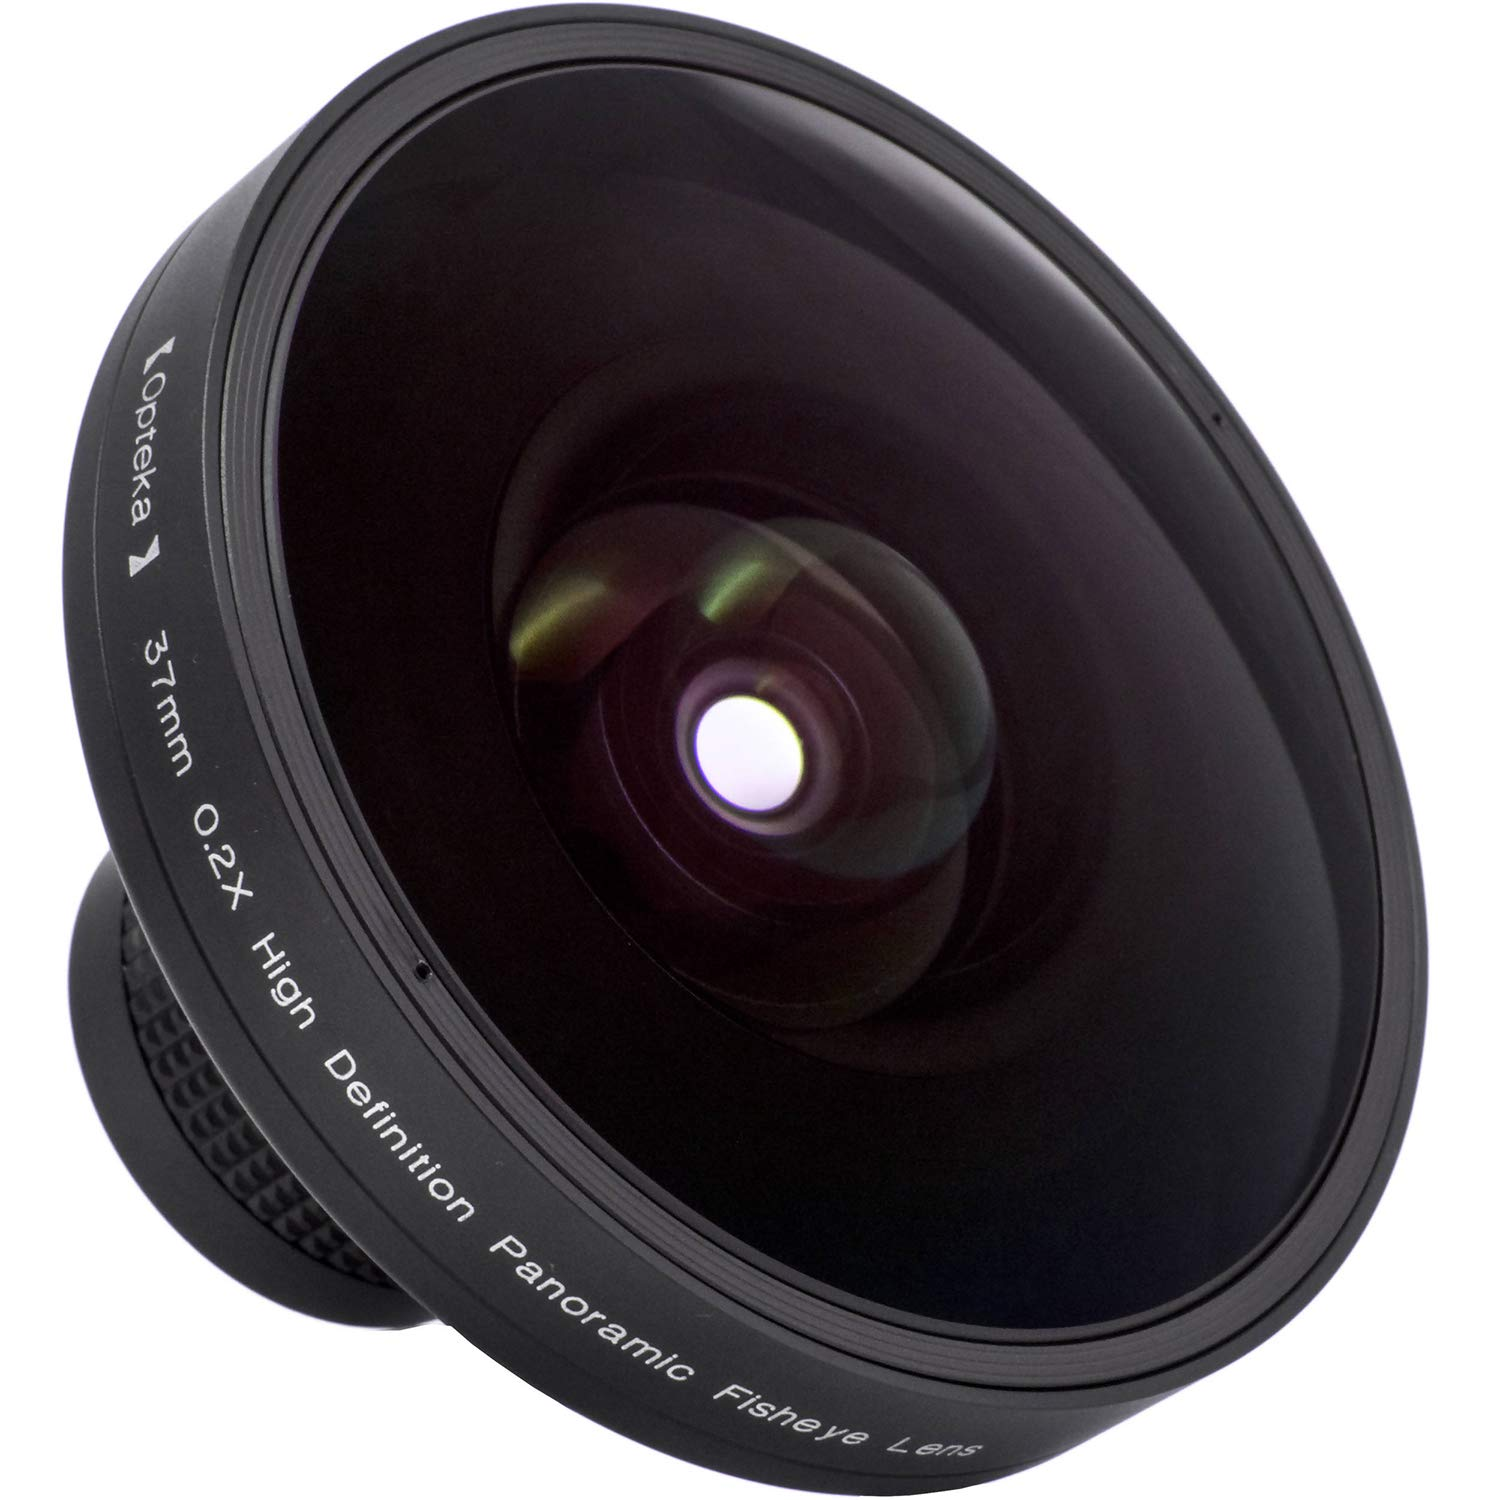 Opteka Platinum Series 37mm 0.2X HD Large Panoramic Vortex Fisheye Lens for Video Cameras